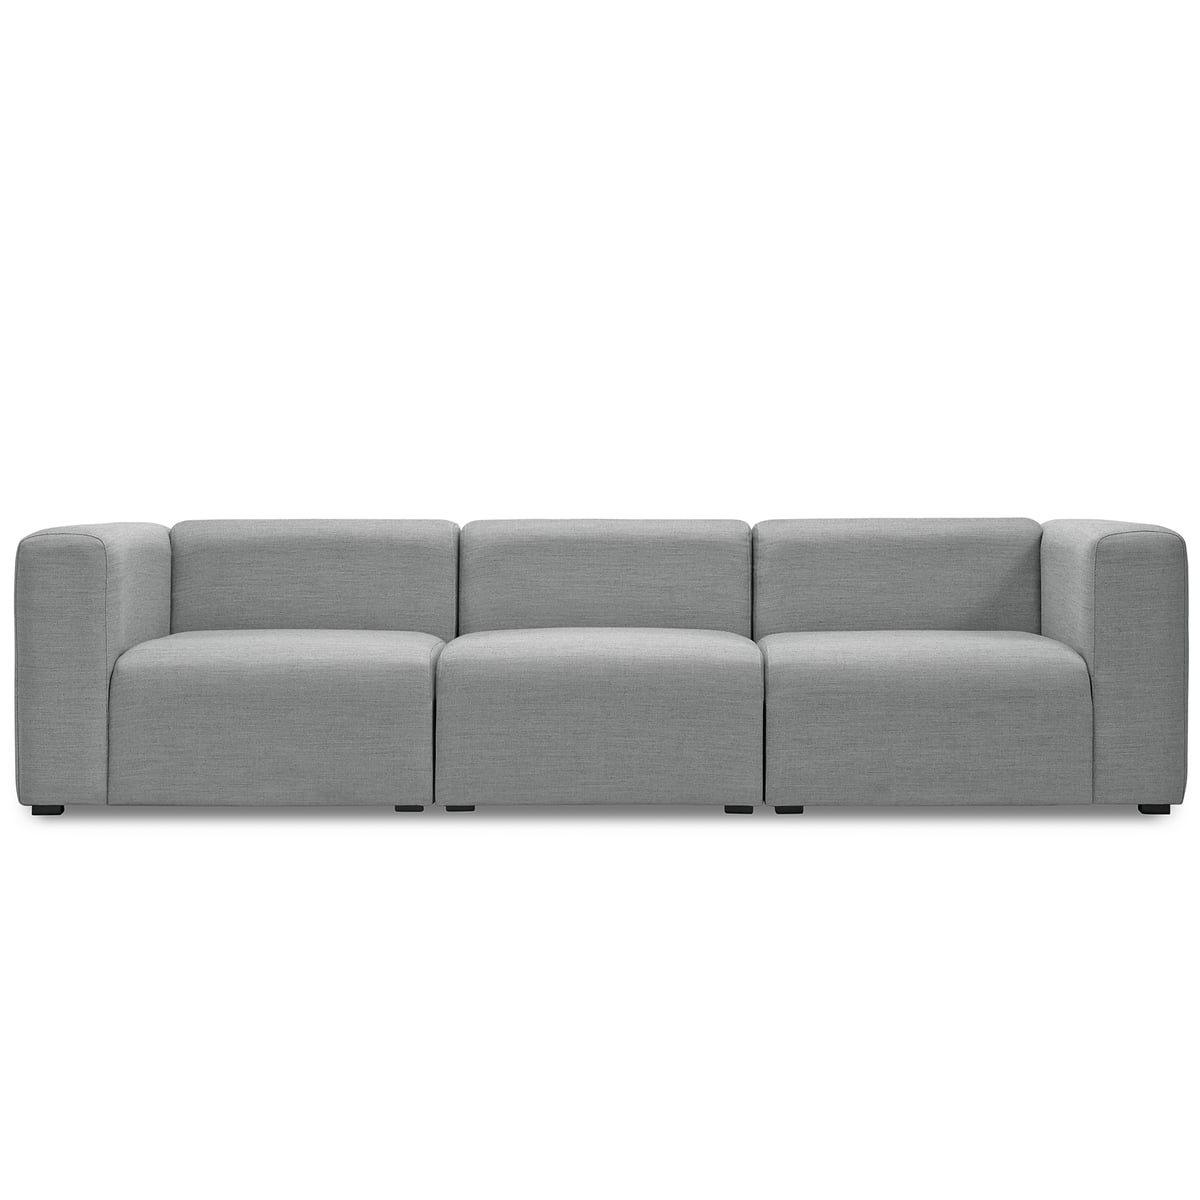 Hay Can Sofa 3 Seater Baci Living Room